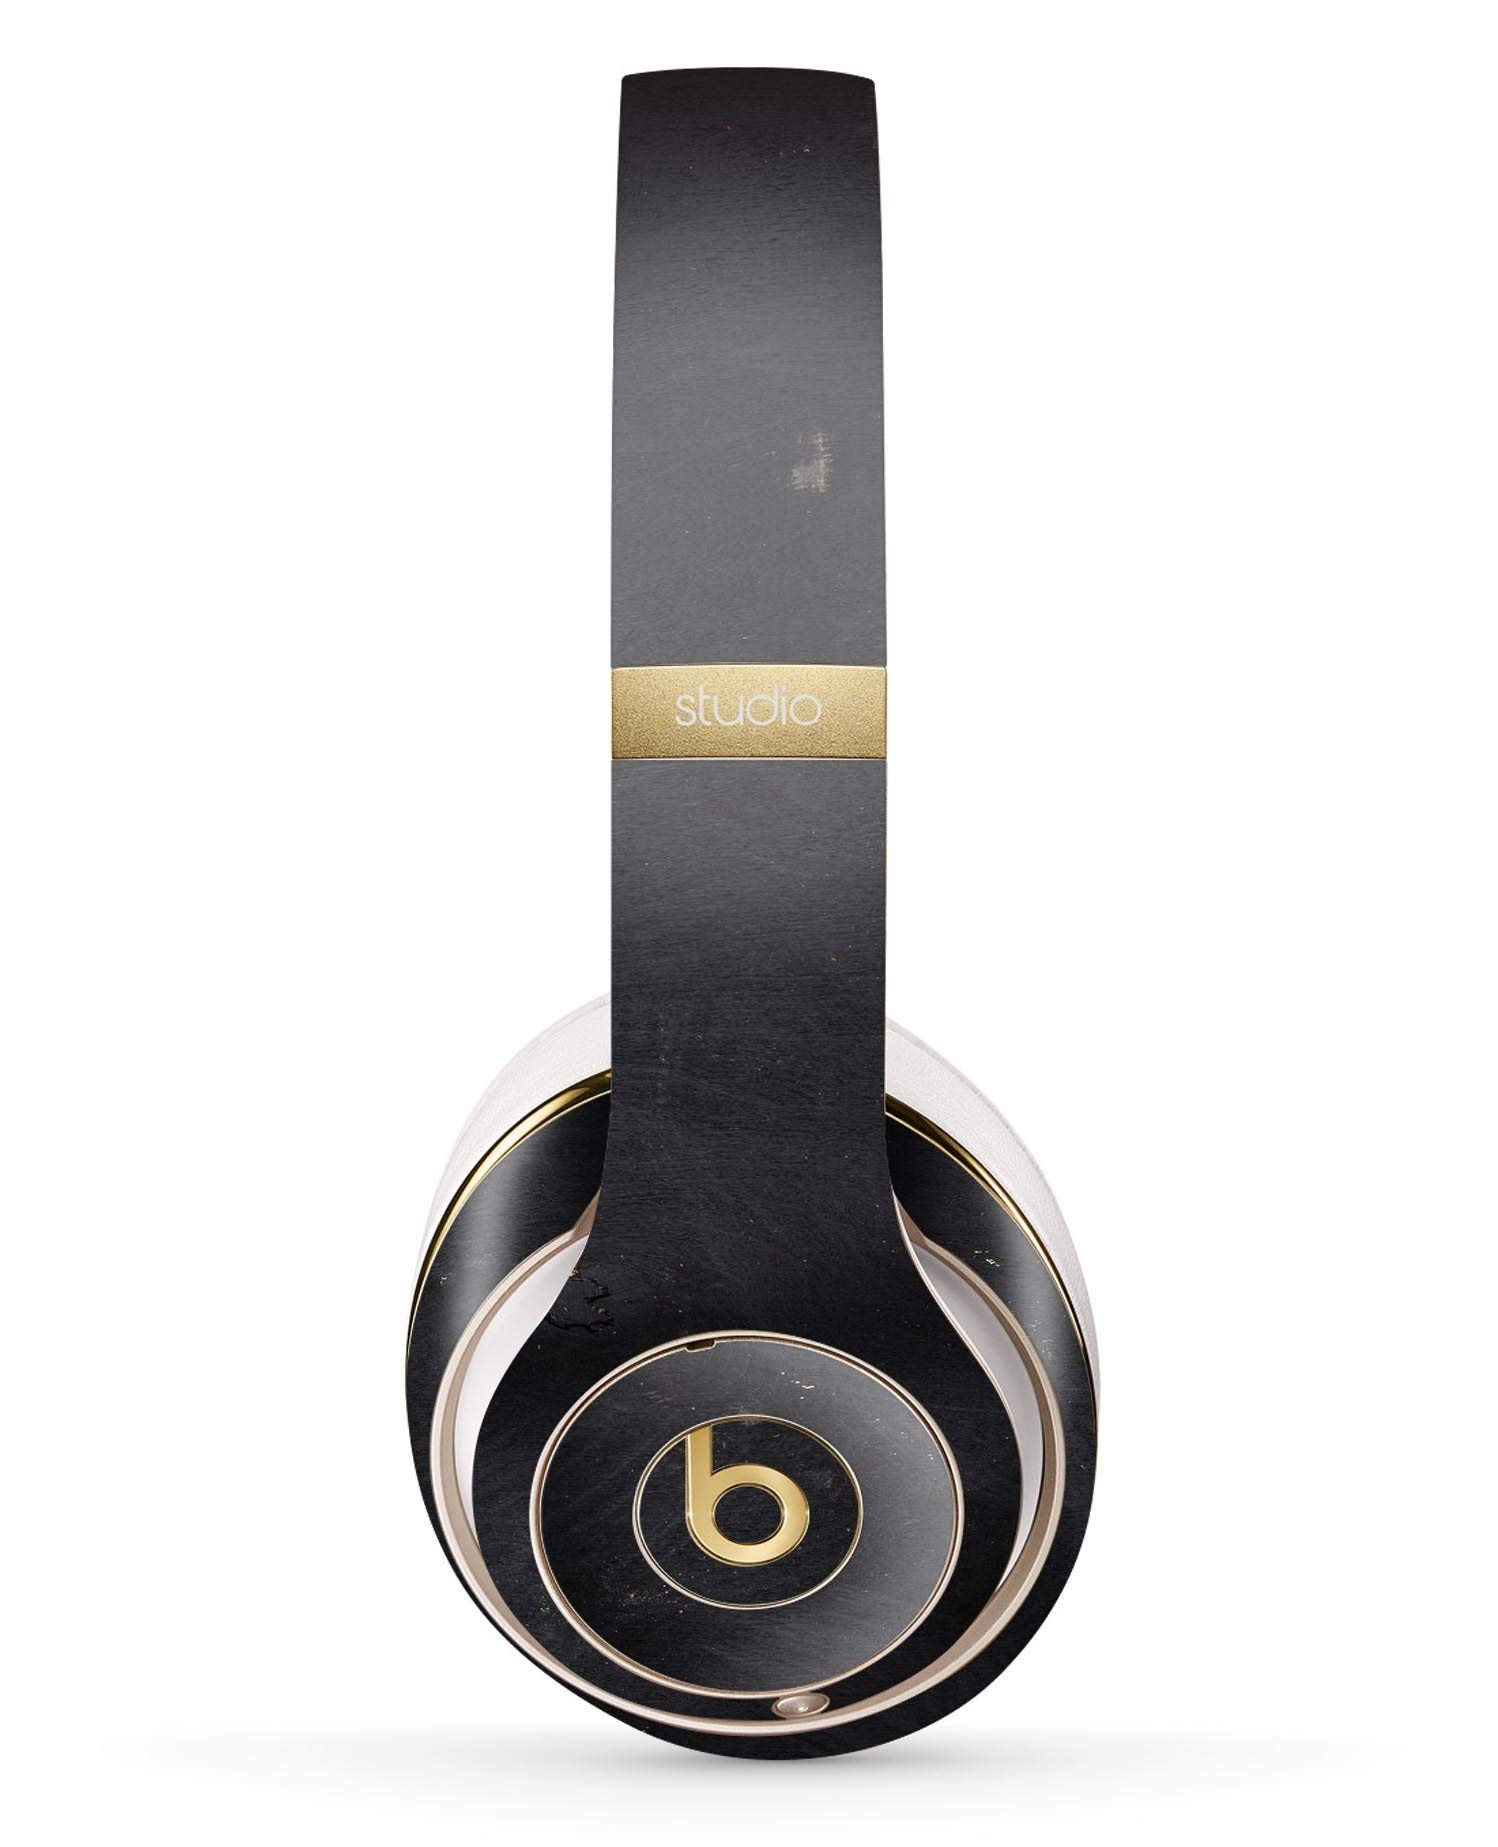 Black and Gold Scratched Woodgrain Design Skinz Full-Body Premium Authentic Skin Kit for The Beats by Dre Studio 2 or 3 Remastered Wireless Headphones Ultra-Thin Protective Decal Wrap